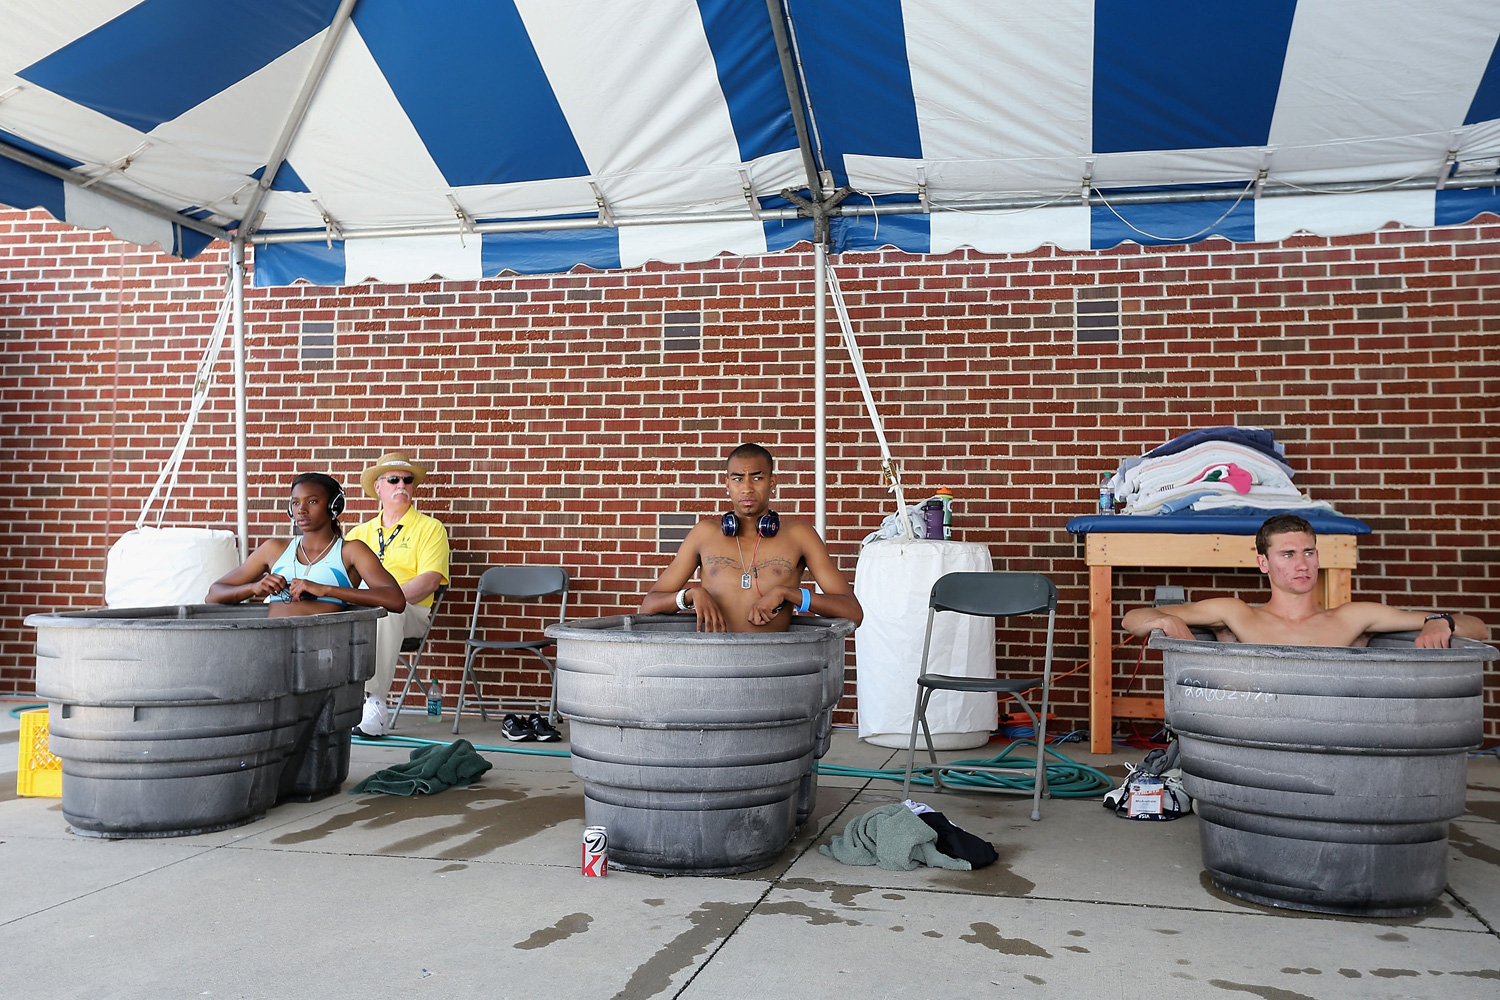 Jaide Stepter, Alexander Monsivaiz and Bryce McAndrew hang out together in a few ice baths on the first day of the 2013 USA Outdoor Track & Field Championships at Drake Stadium.